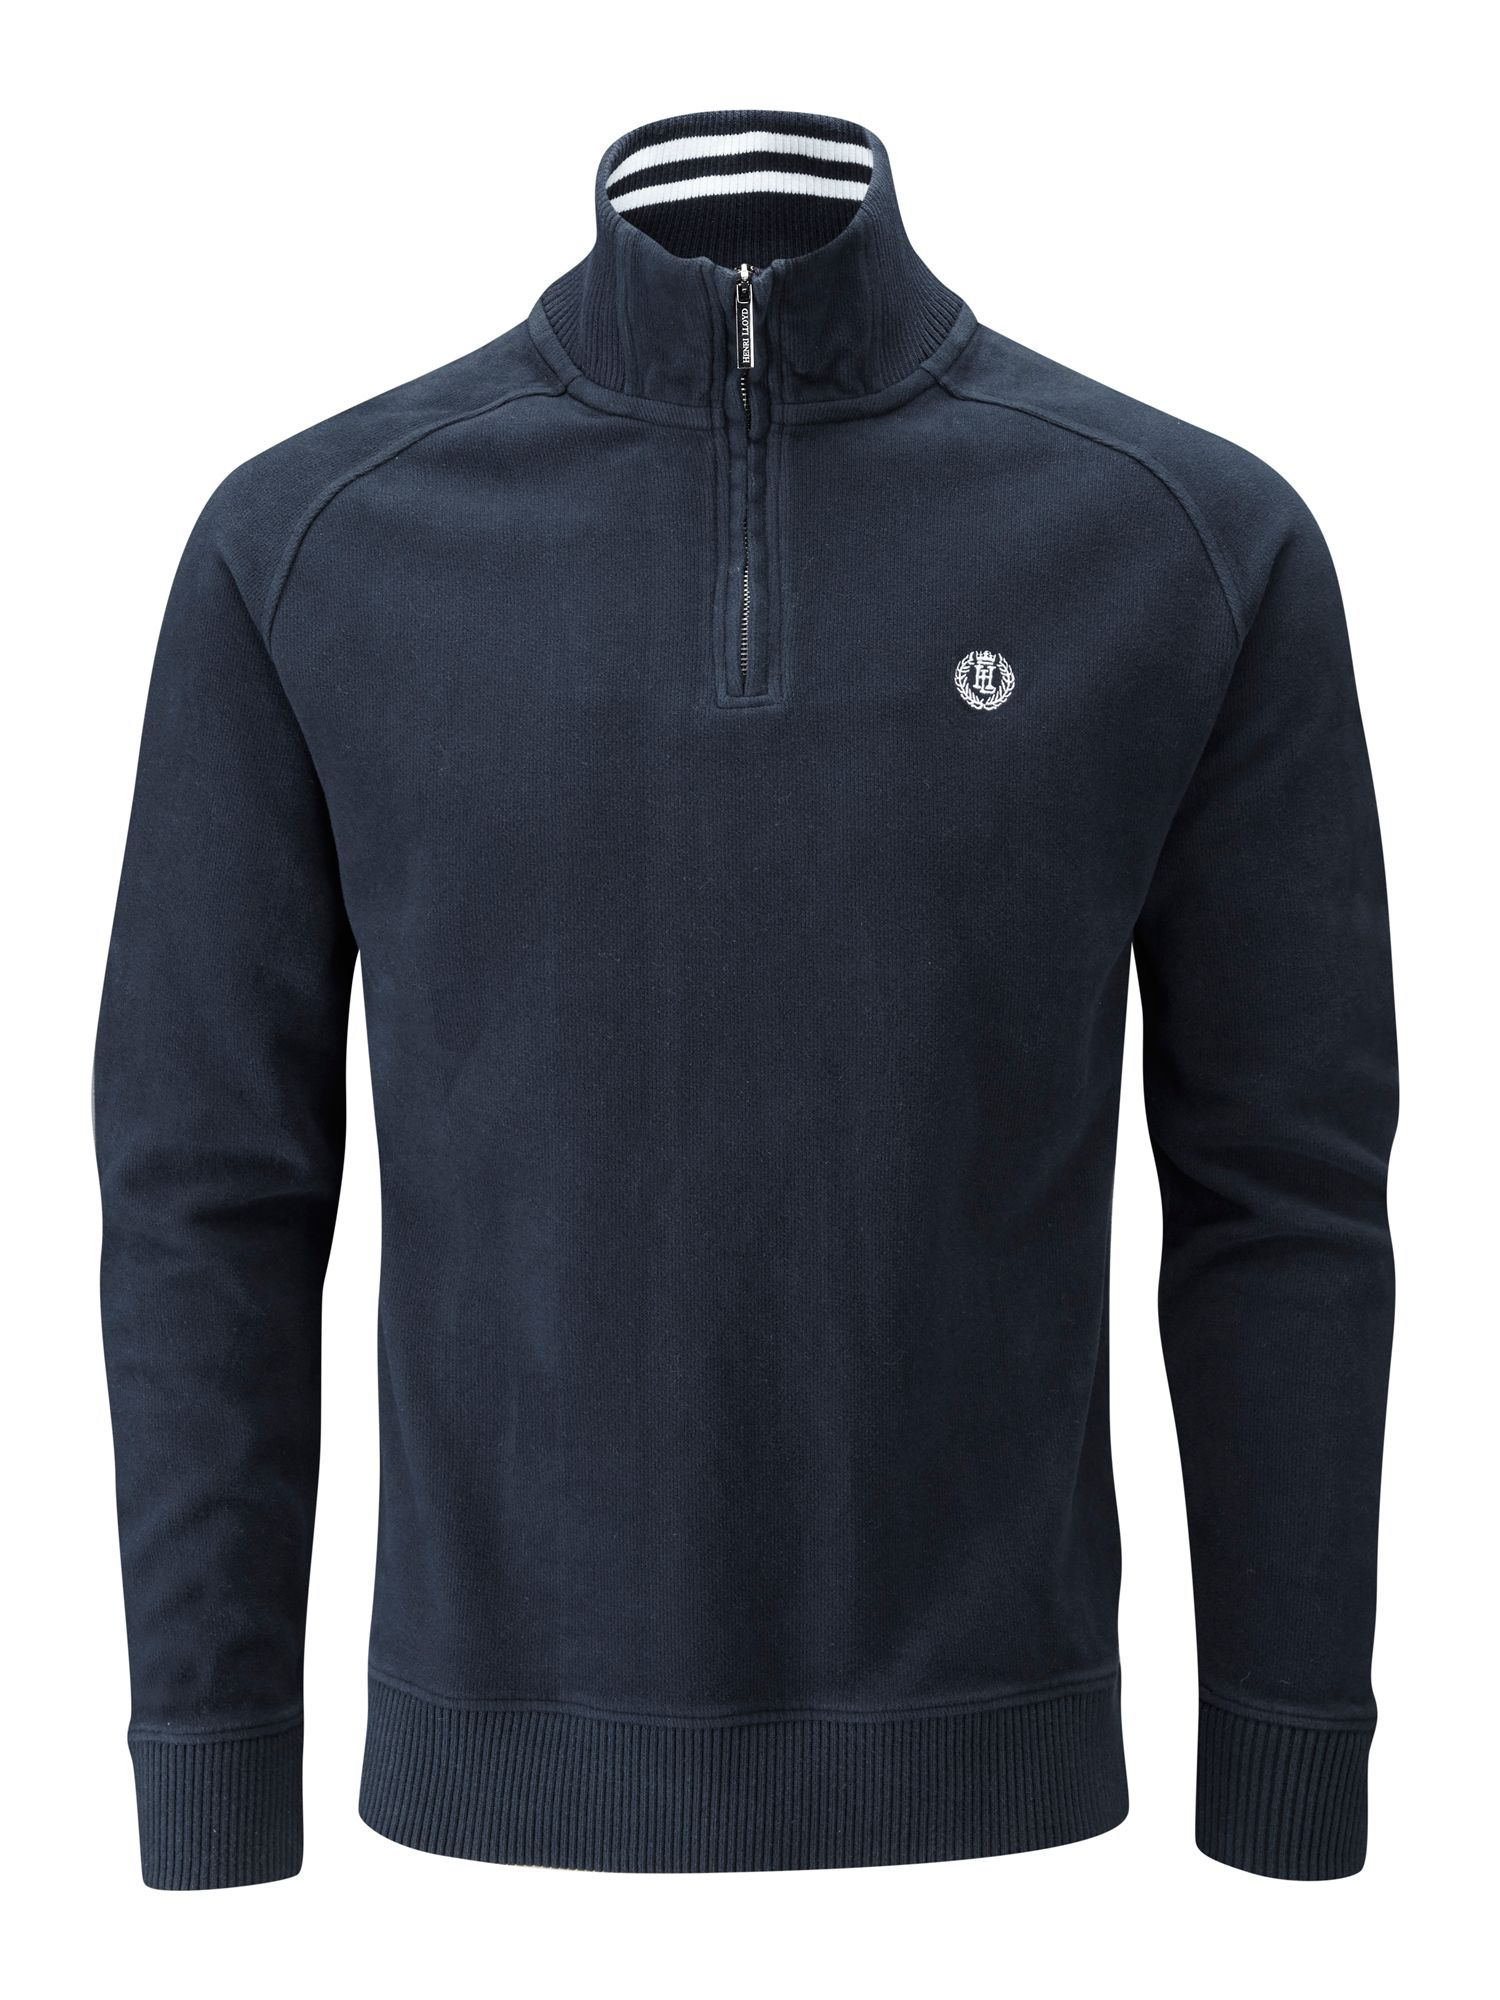 Men's Henri Lloyd Rednor Half Zip Sweat, Blue